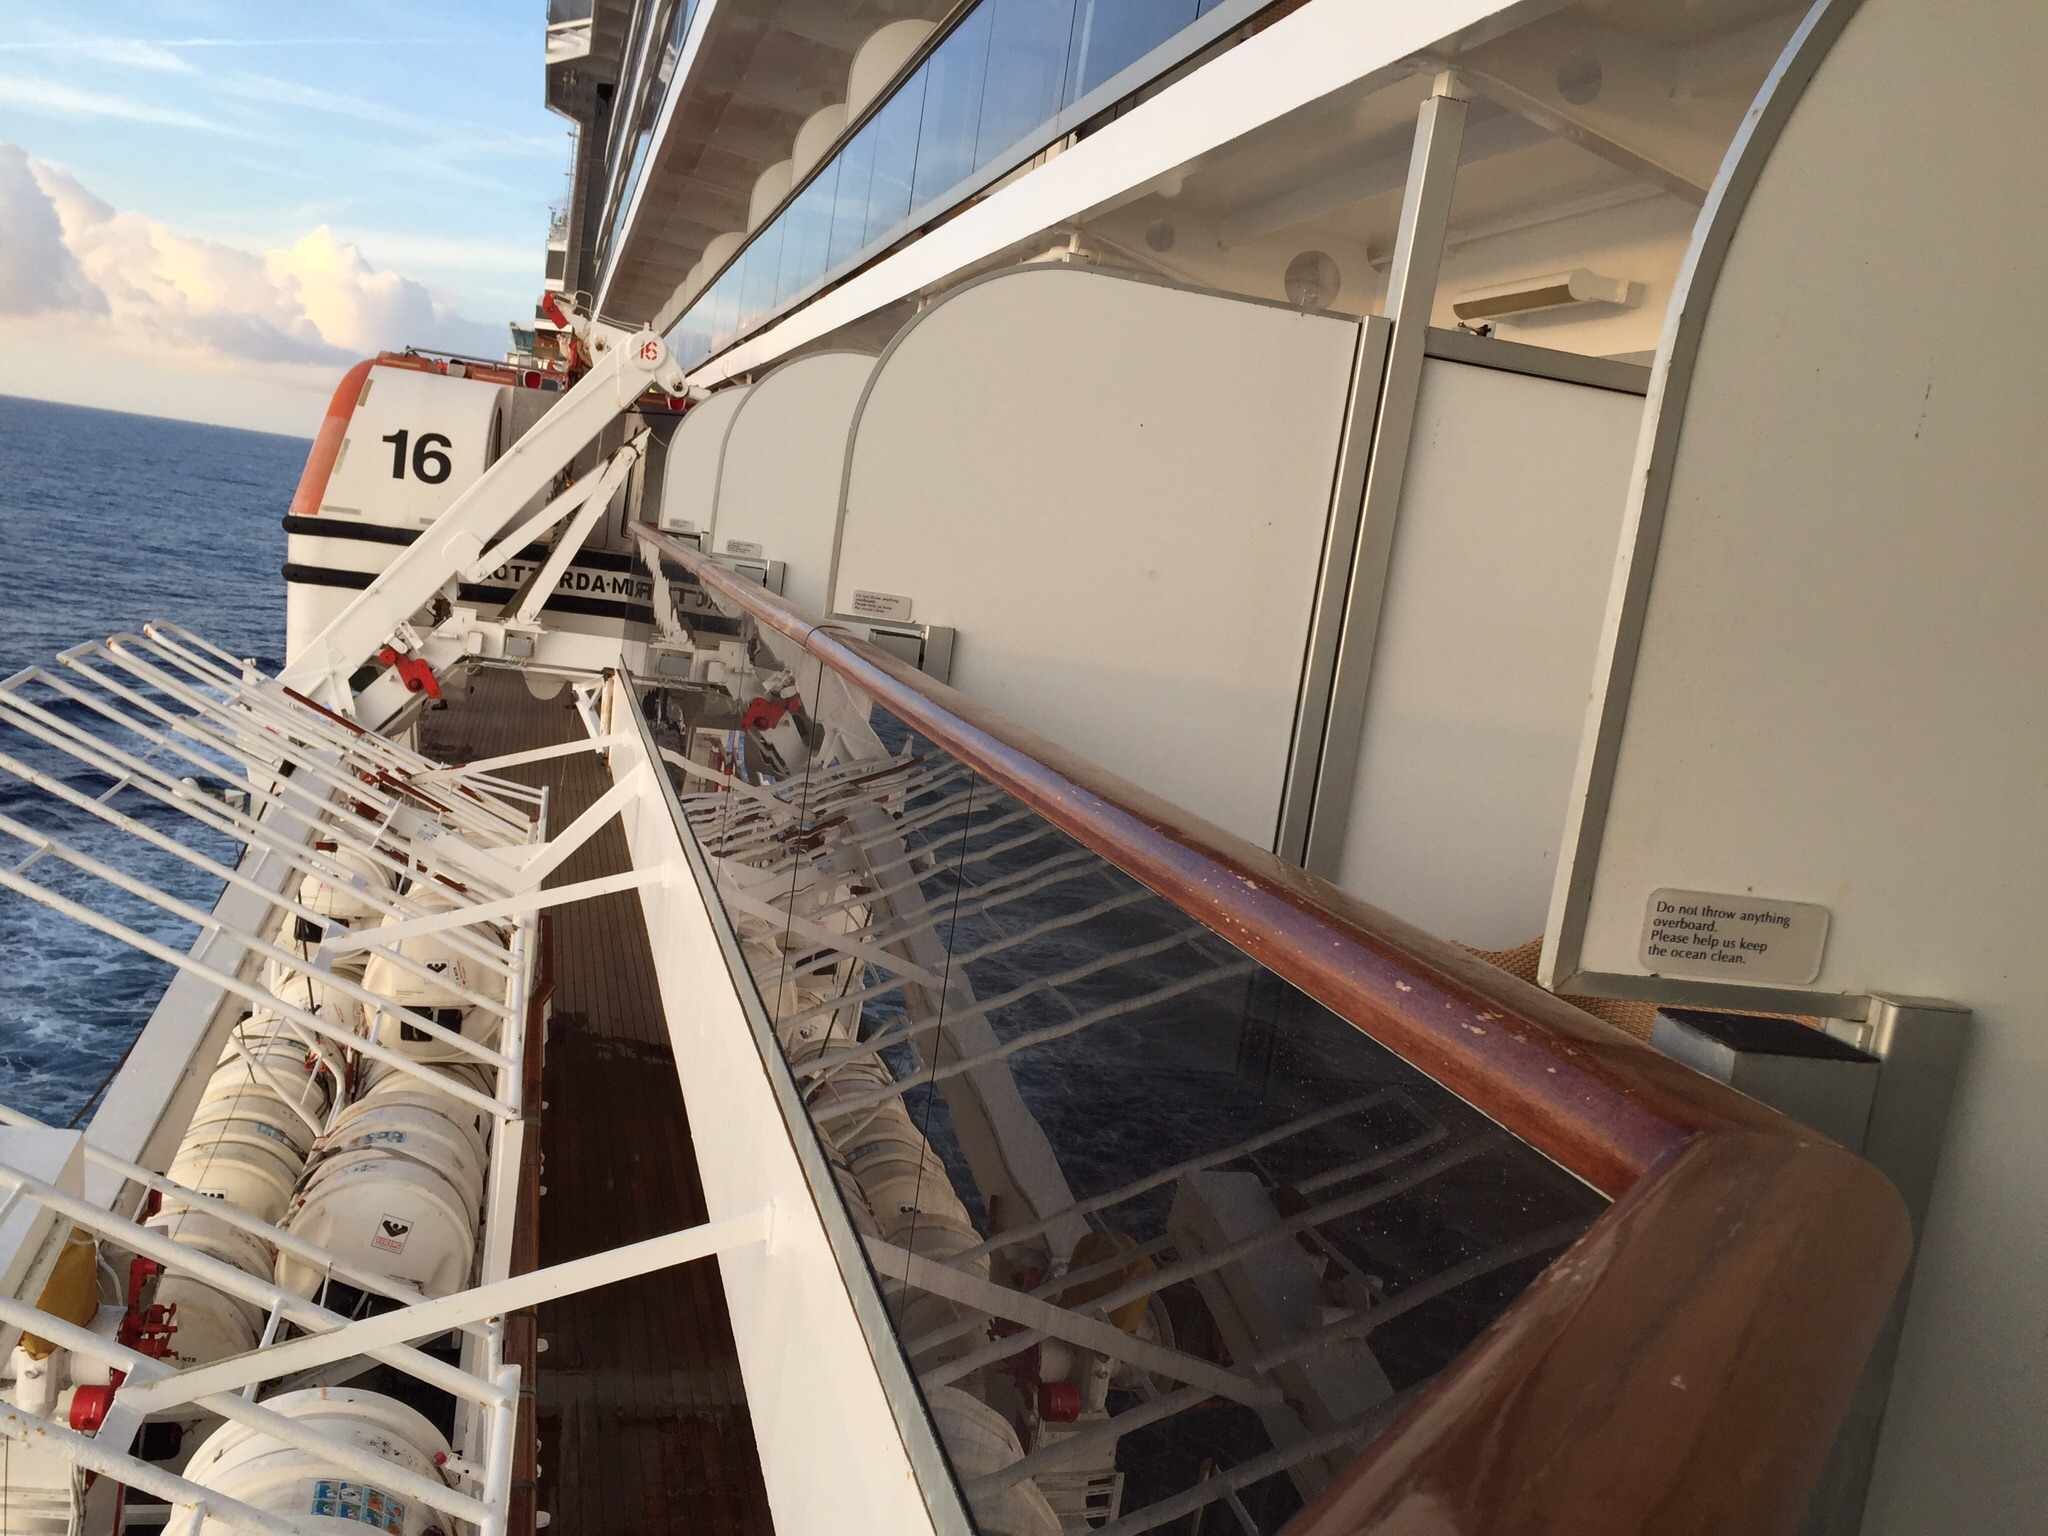 This Is A Picture Provided By A Reviewer Who Sailed In Zuiderdam Cabin 4132  In December 2014